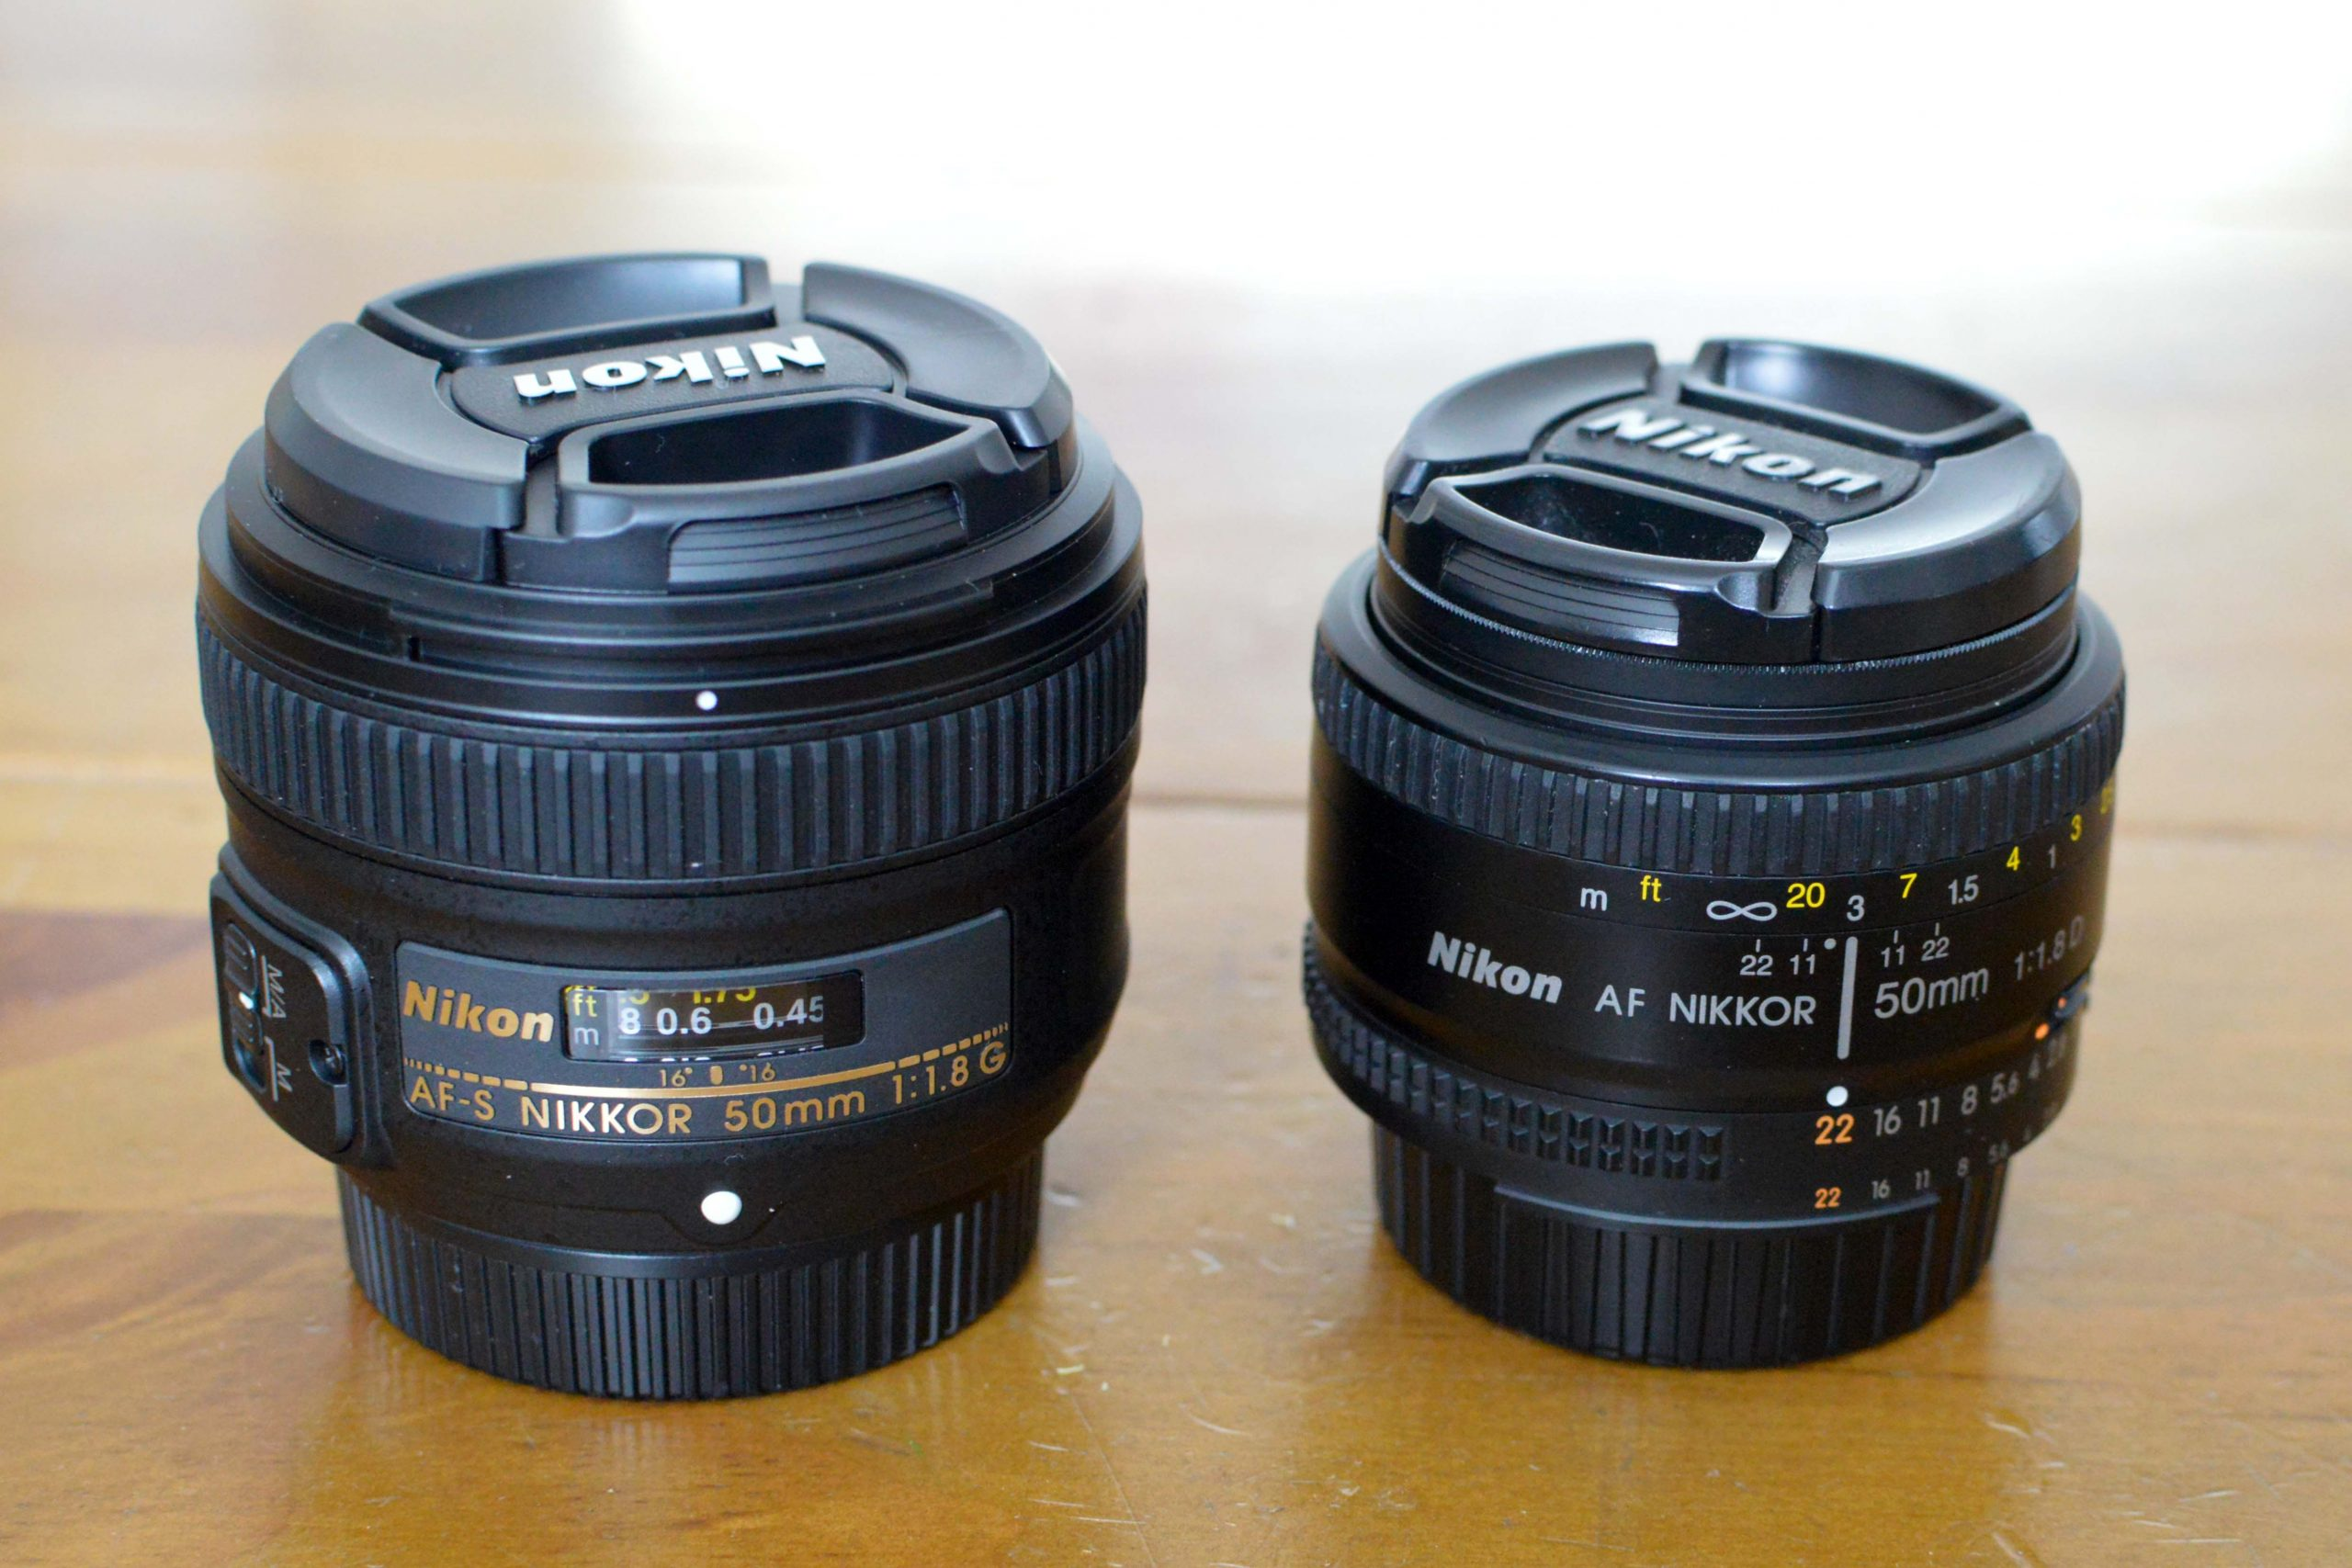 Nikon 50mm 1.8D vs Nikon 50mm 1.8G Review